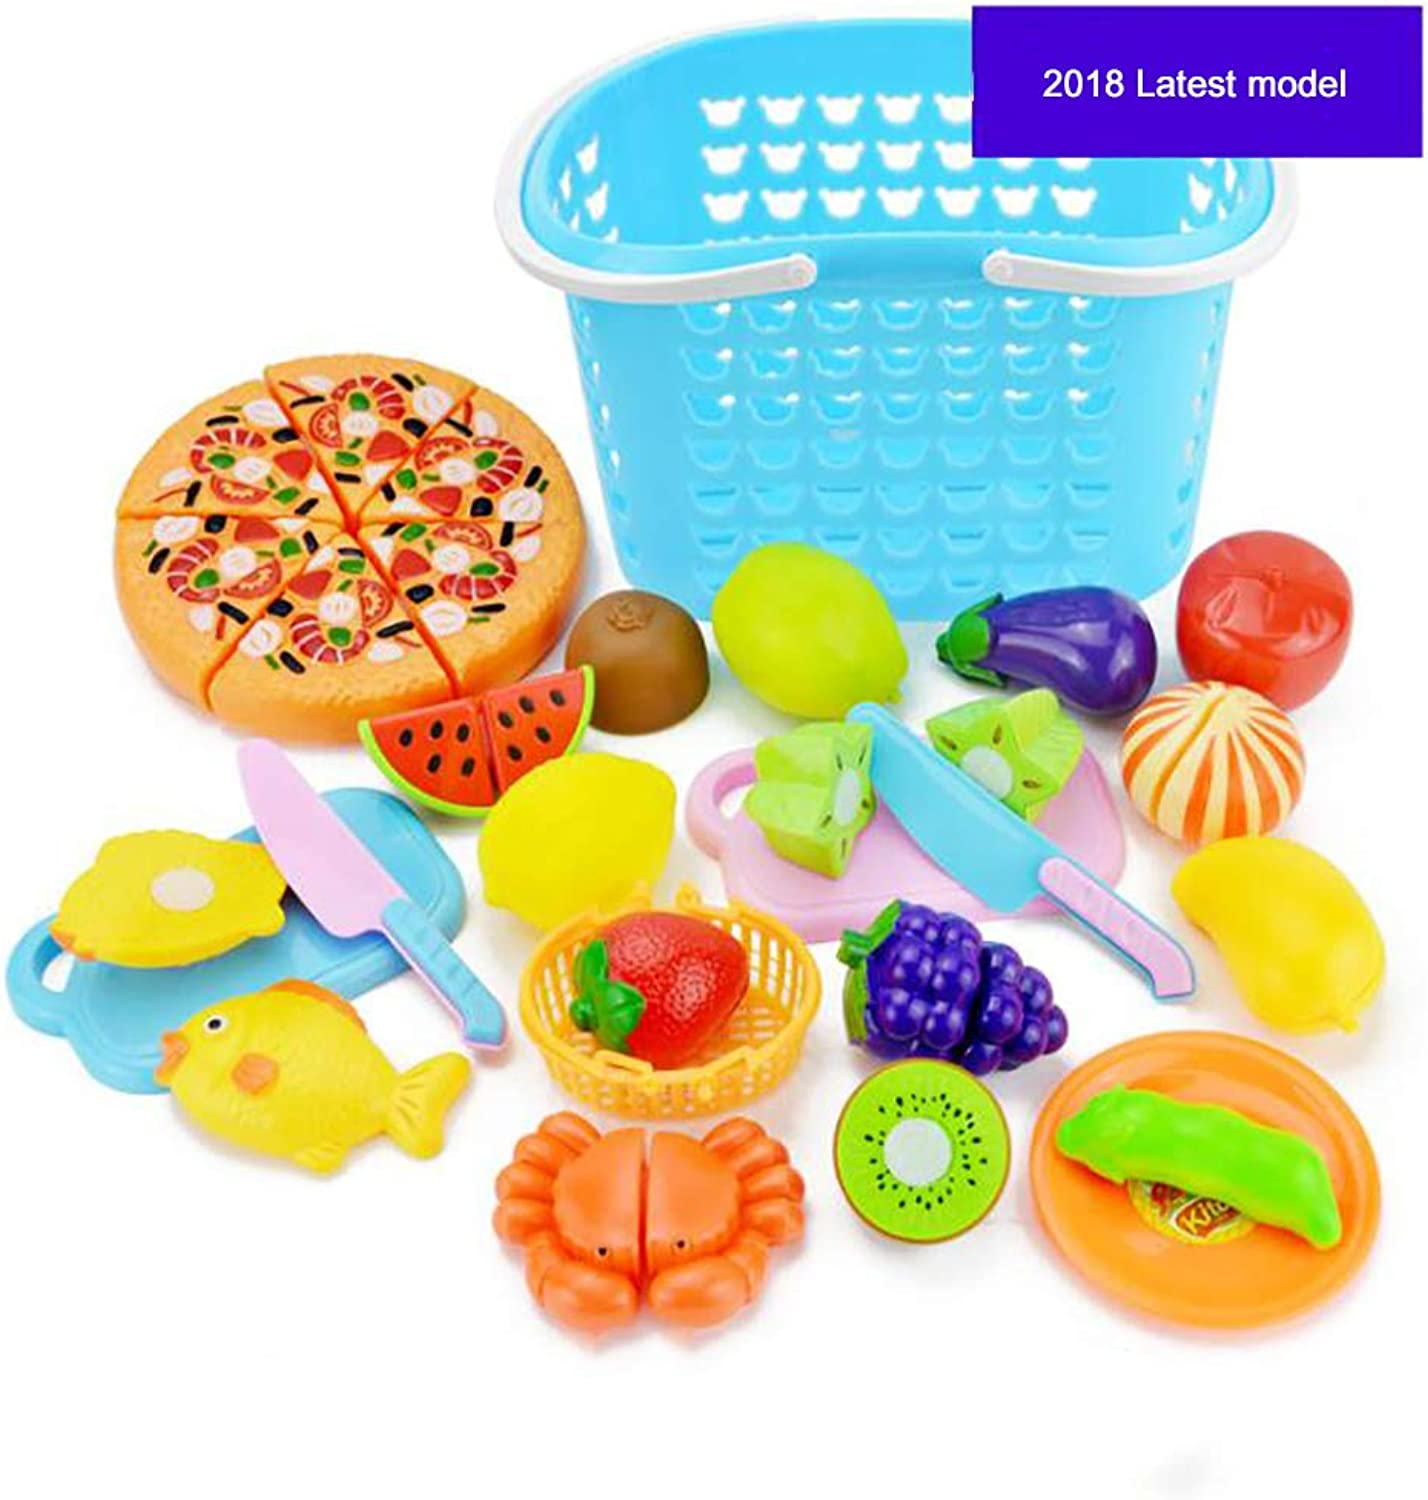 Kids Toys Age 38 Boys and Girls Simulation Cut Fruit Game  Cultivate Handson Ability Toys  27 Piece Set